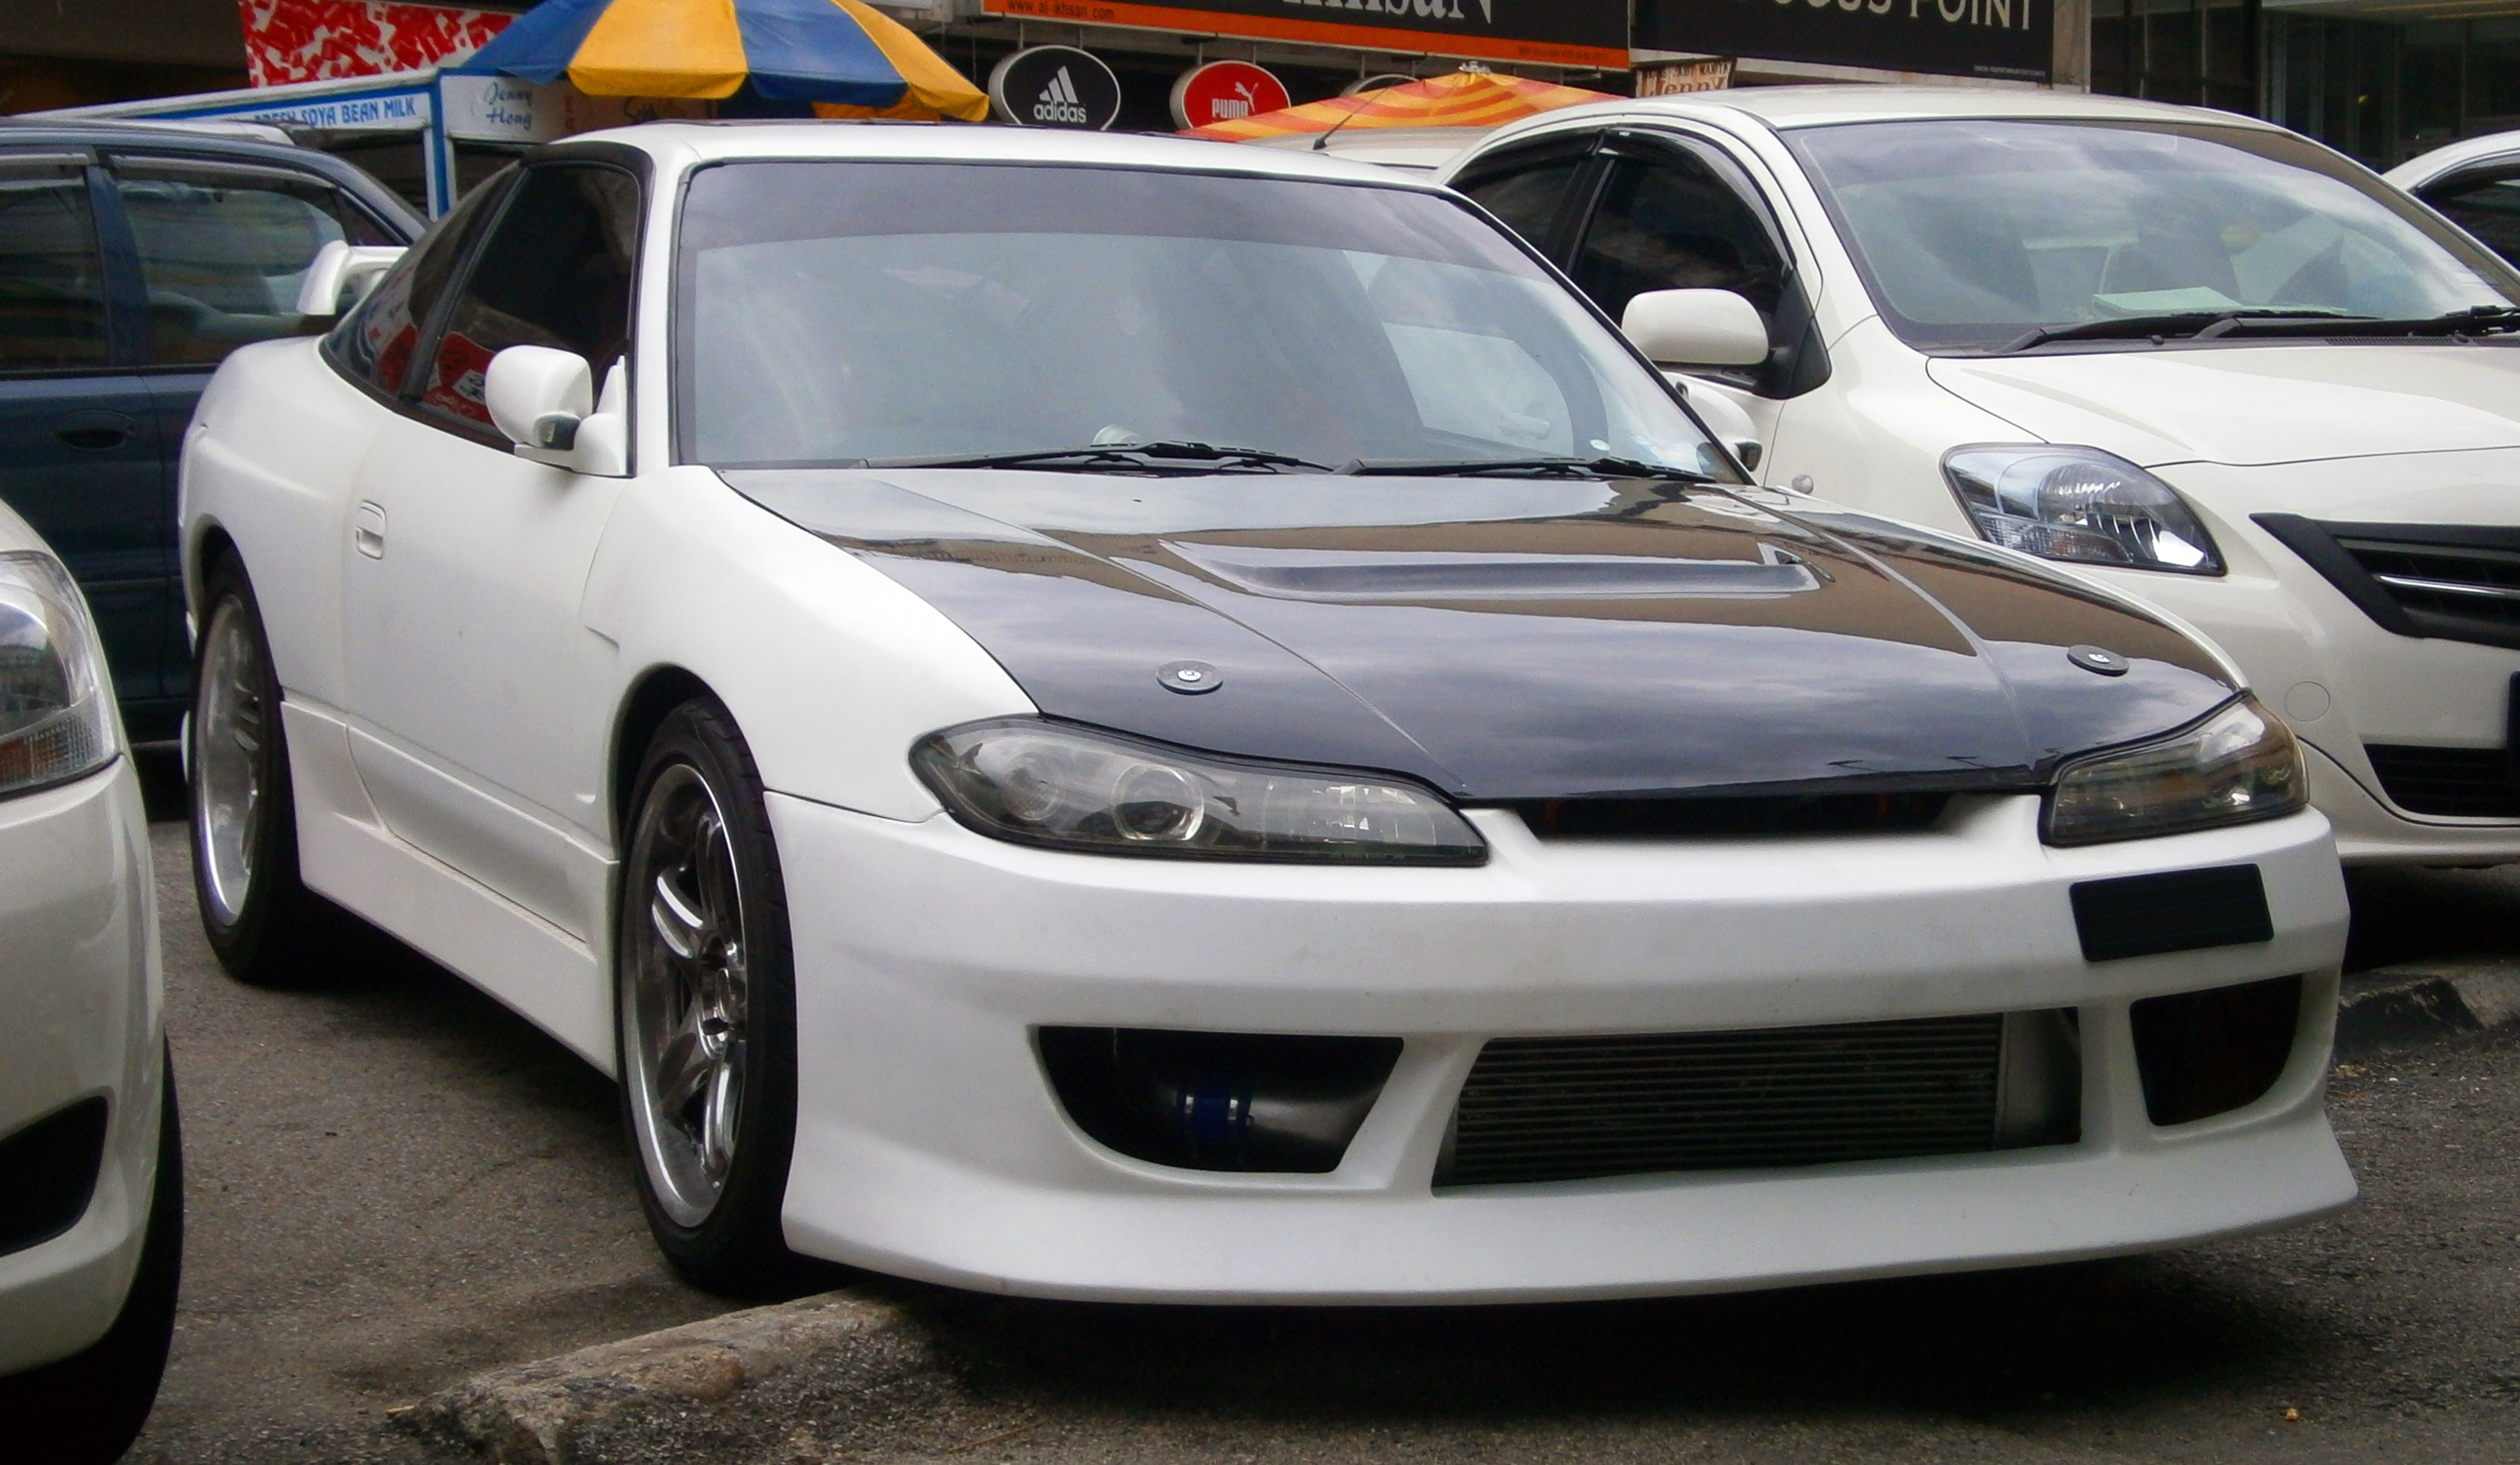 file19992002 nissan silvia s15 modified in petaling